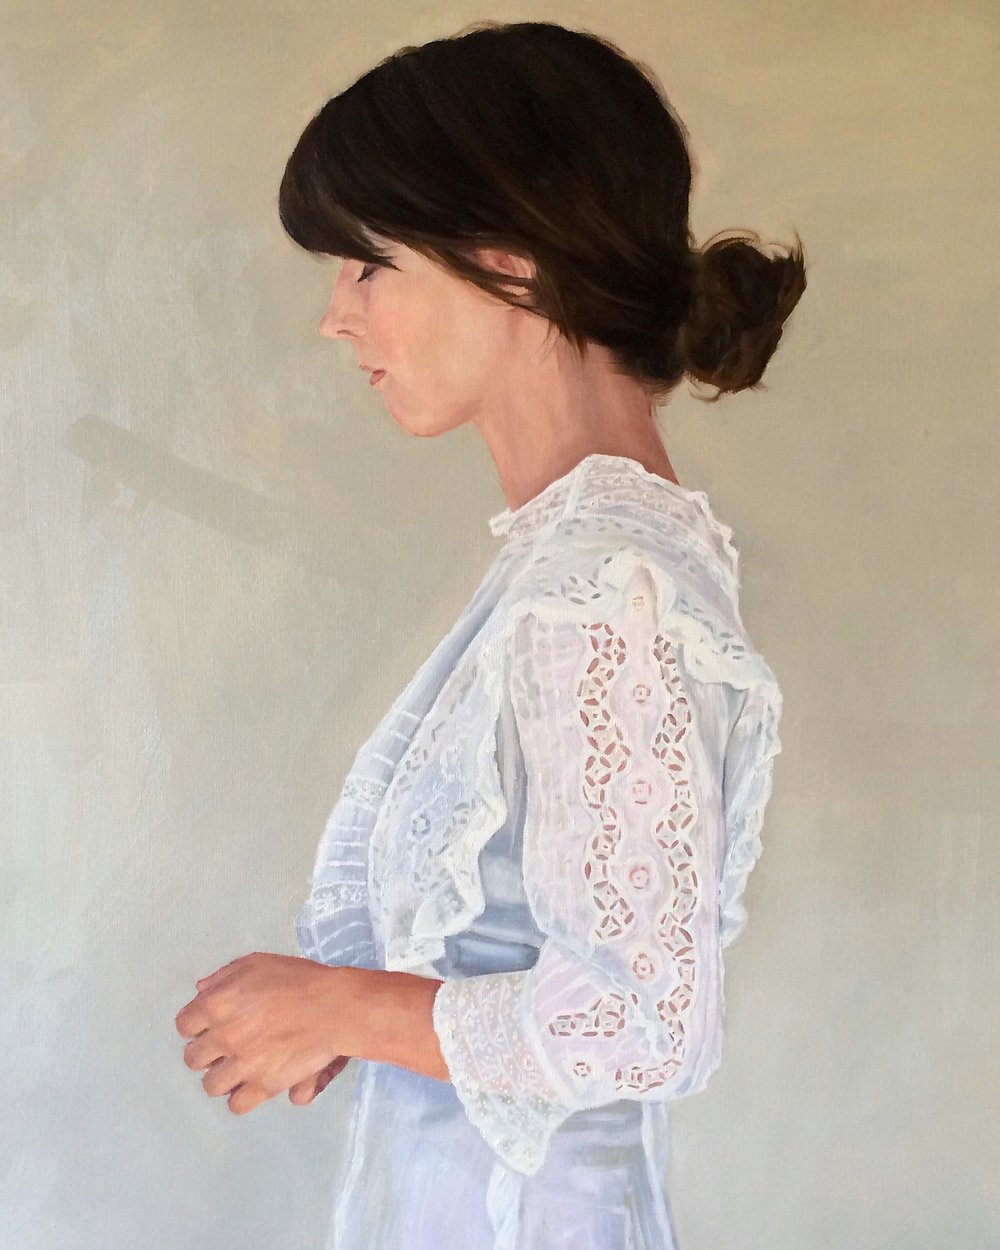 Shura , Oil on Linen by  Holly Harper .